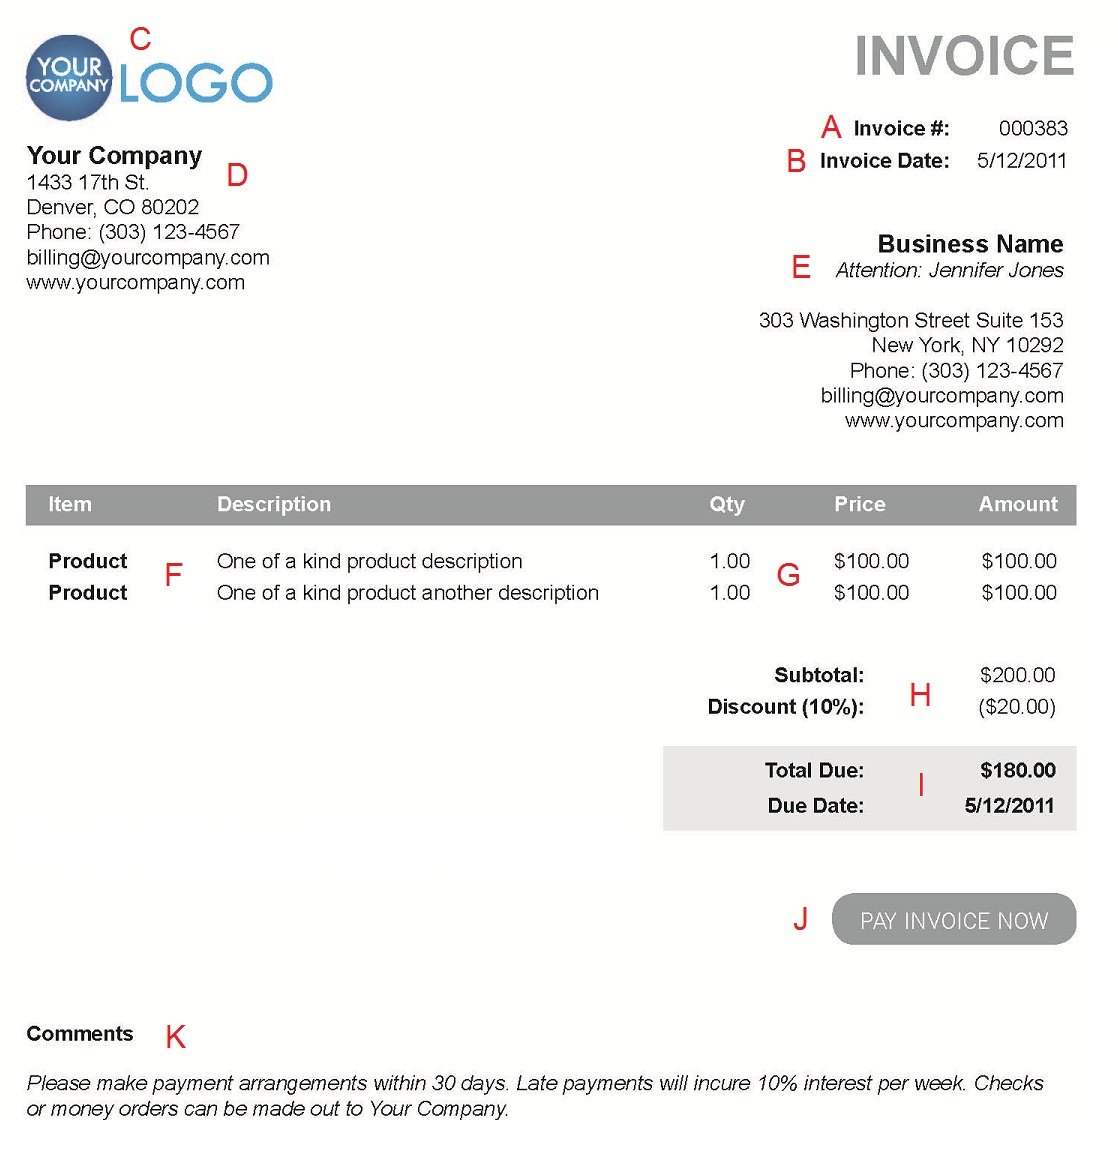 Soulfulpowerus  Unusual The  Different Sections Of An Electronic Payment Invoice With Glamorous A  With Appealing Terms On An Invoice Also Ups Invoice Number Tracking In Addition Invoice Due Date And Template For An Invoice As Well As Invoice Pdf Template Additionally Free Invoice Forms To Print From Paysimplecom With Soulfulpowerus  Glamorous The  Different Sections Of An Electronic Payment Invoice With Appealing A  And Unusual Terms On An Invoice Also Ups Invoice Number Tracking In Addition Invoice Due Date From Paysimplecom